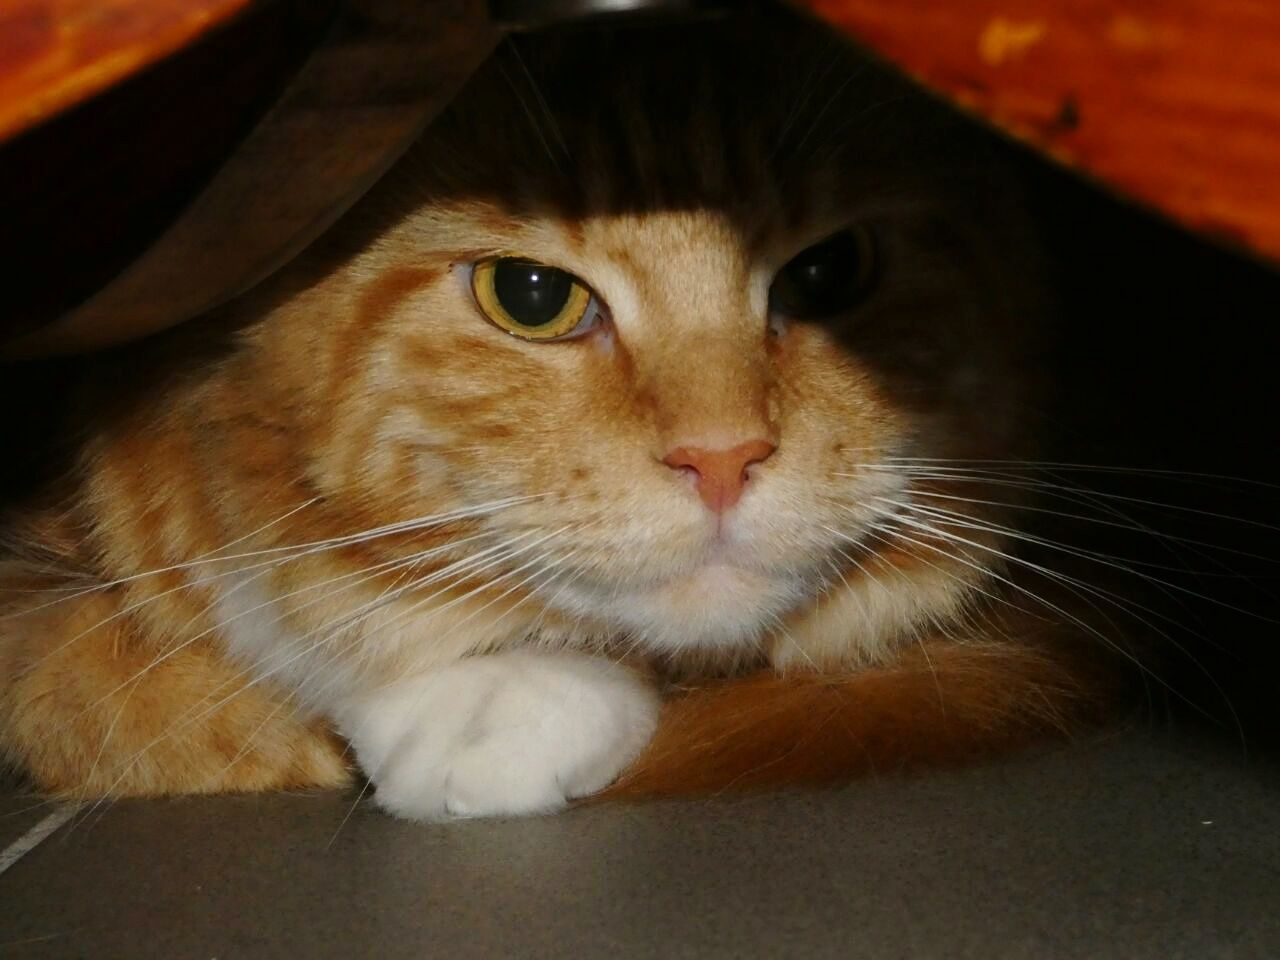 Feline Whisker Indoors  Animal Themes Domestic Cat Pets Domestic Animals Hobby Photography Katze Maine Coon Maine Coon Cat Mainecoonlovers EyeEmNewHere Hide